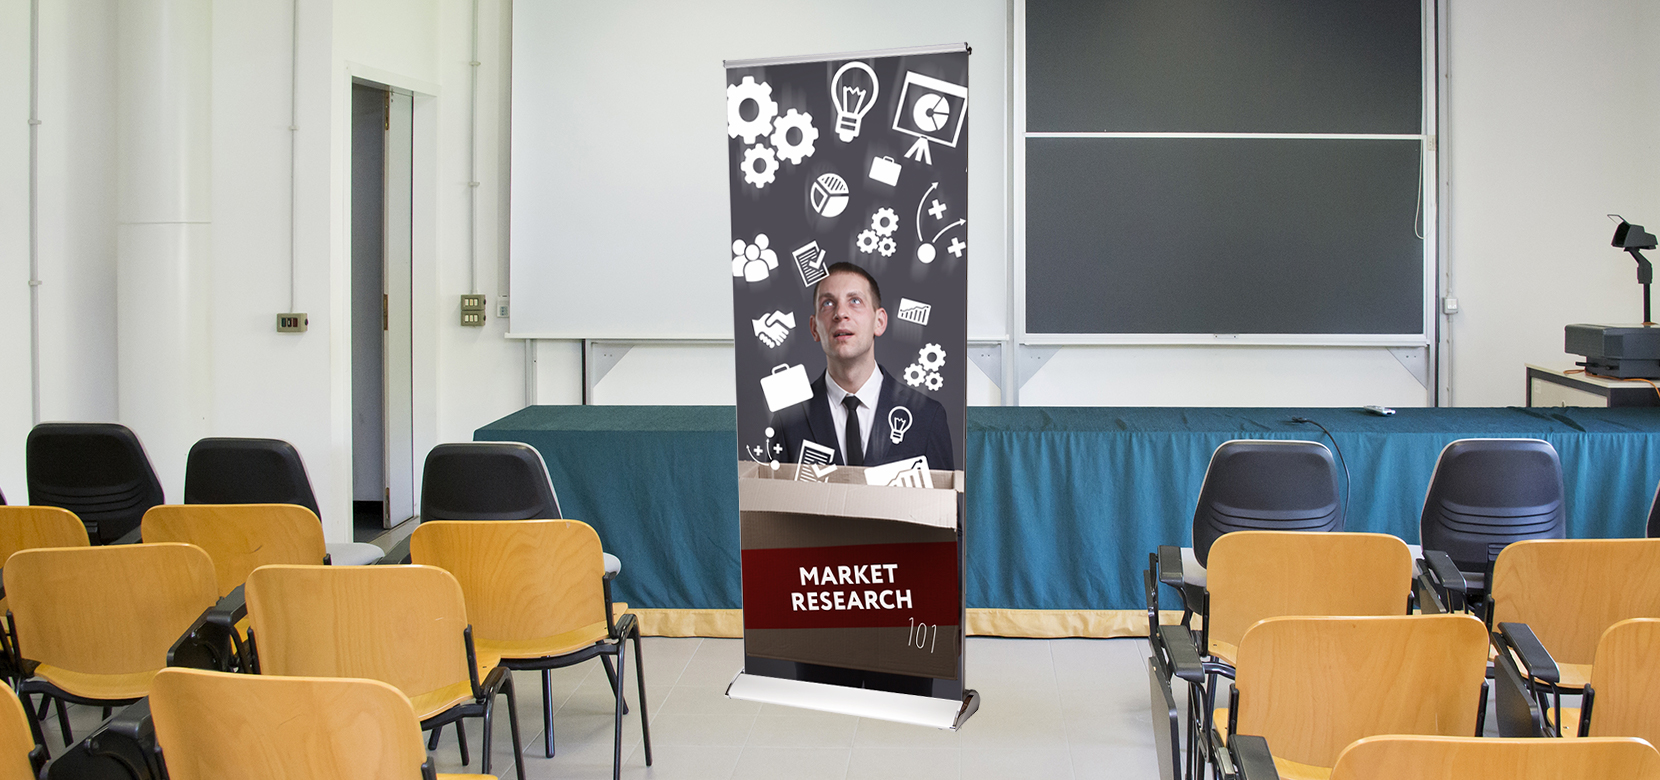 Retractable Banners for Conferences